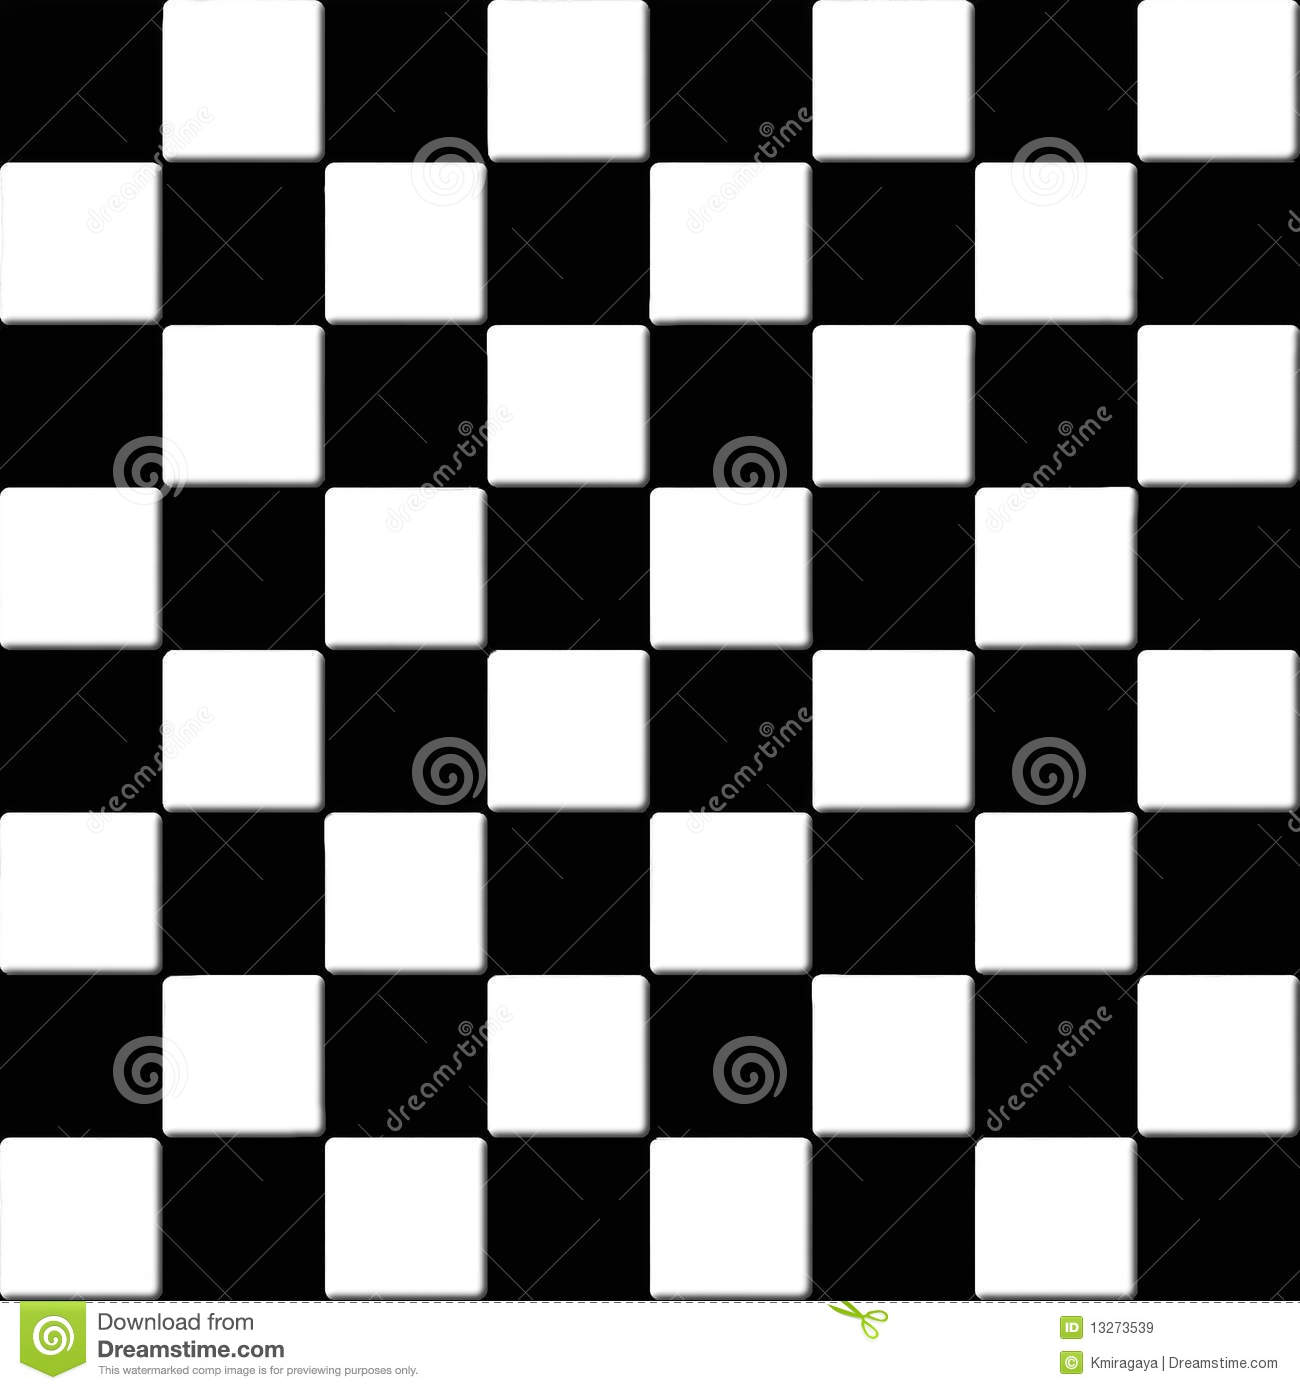 Seamless Black And White Checkered Tiles Royalty Free